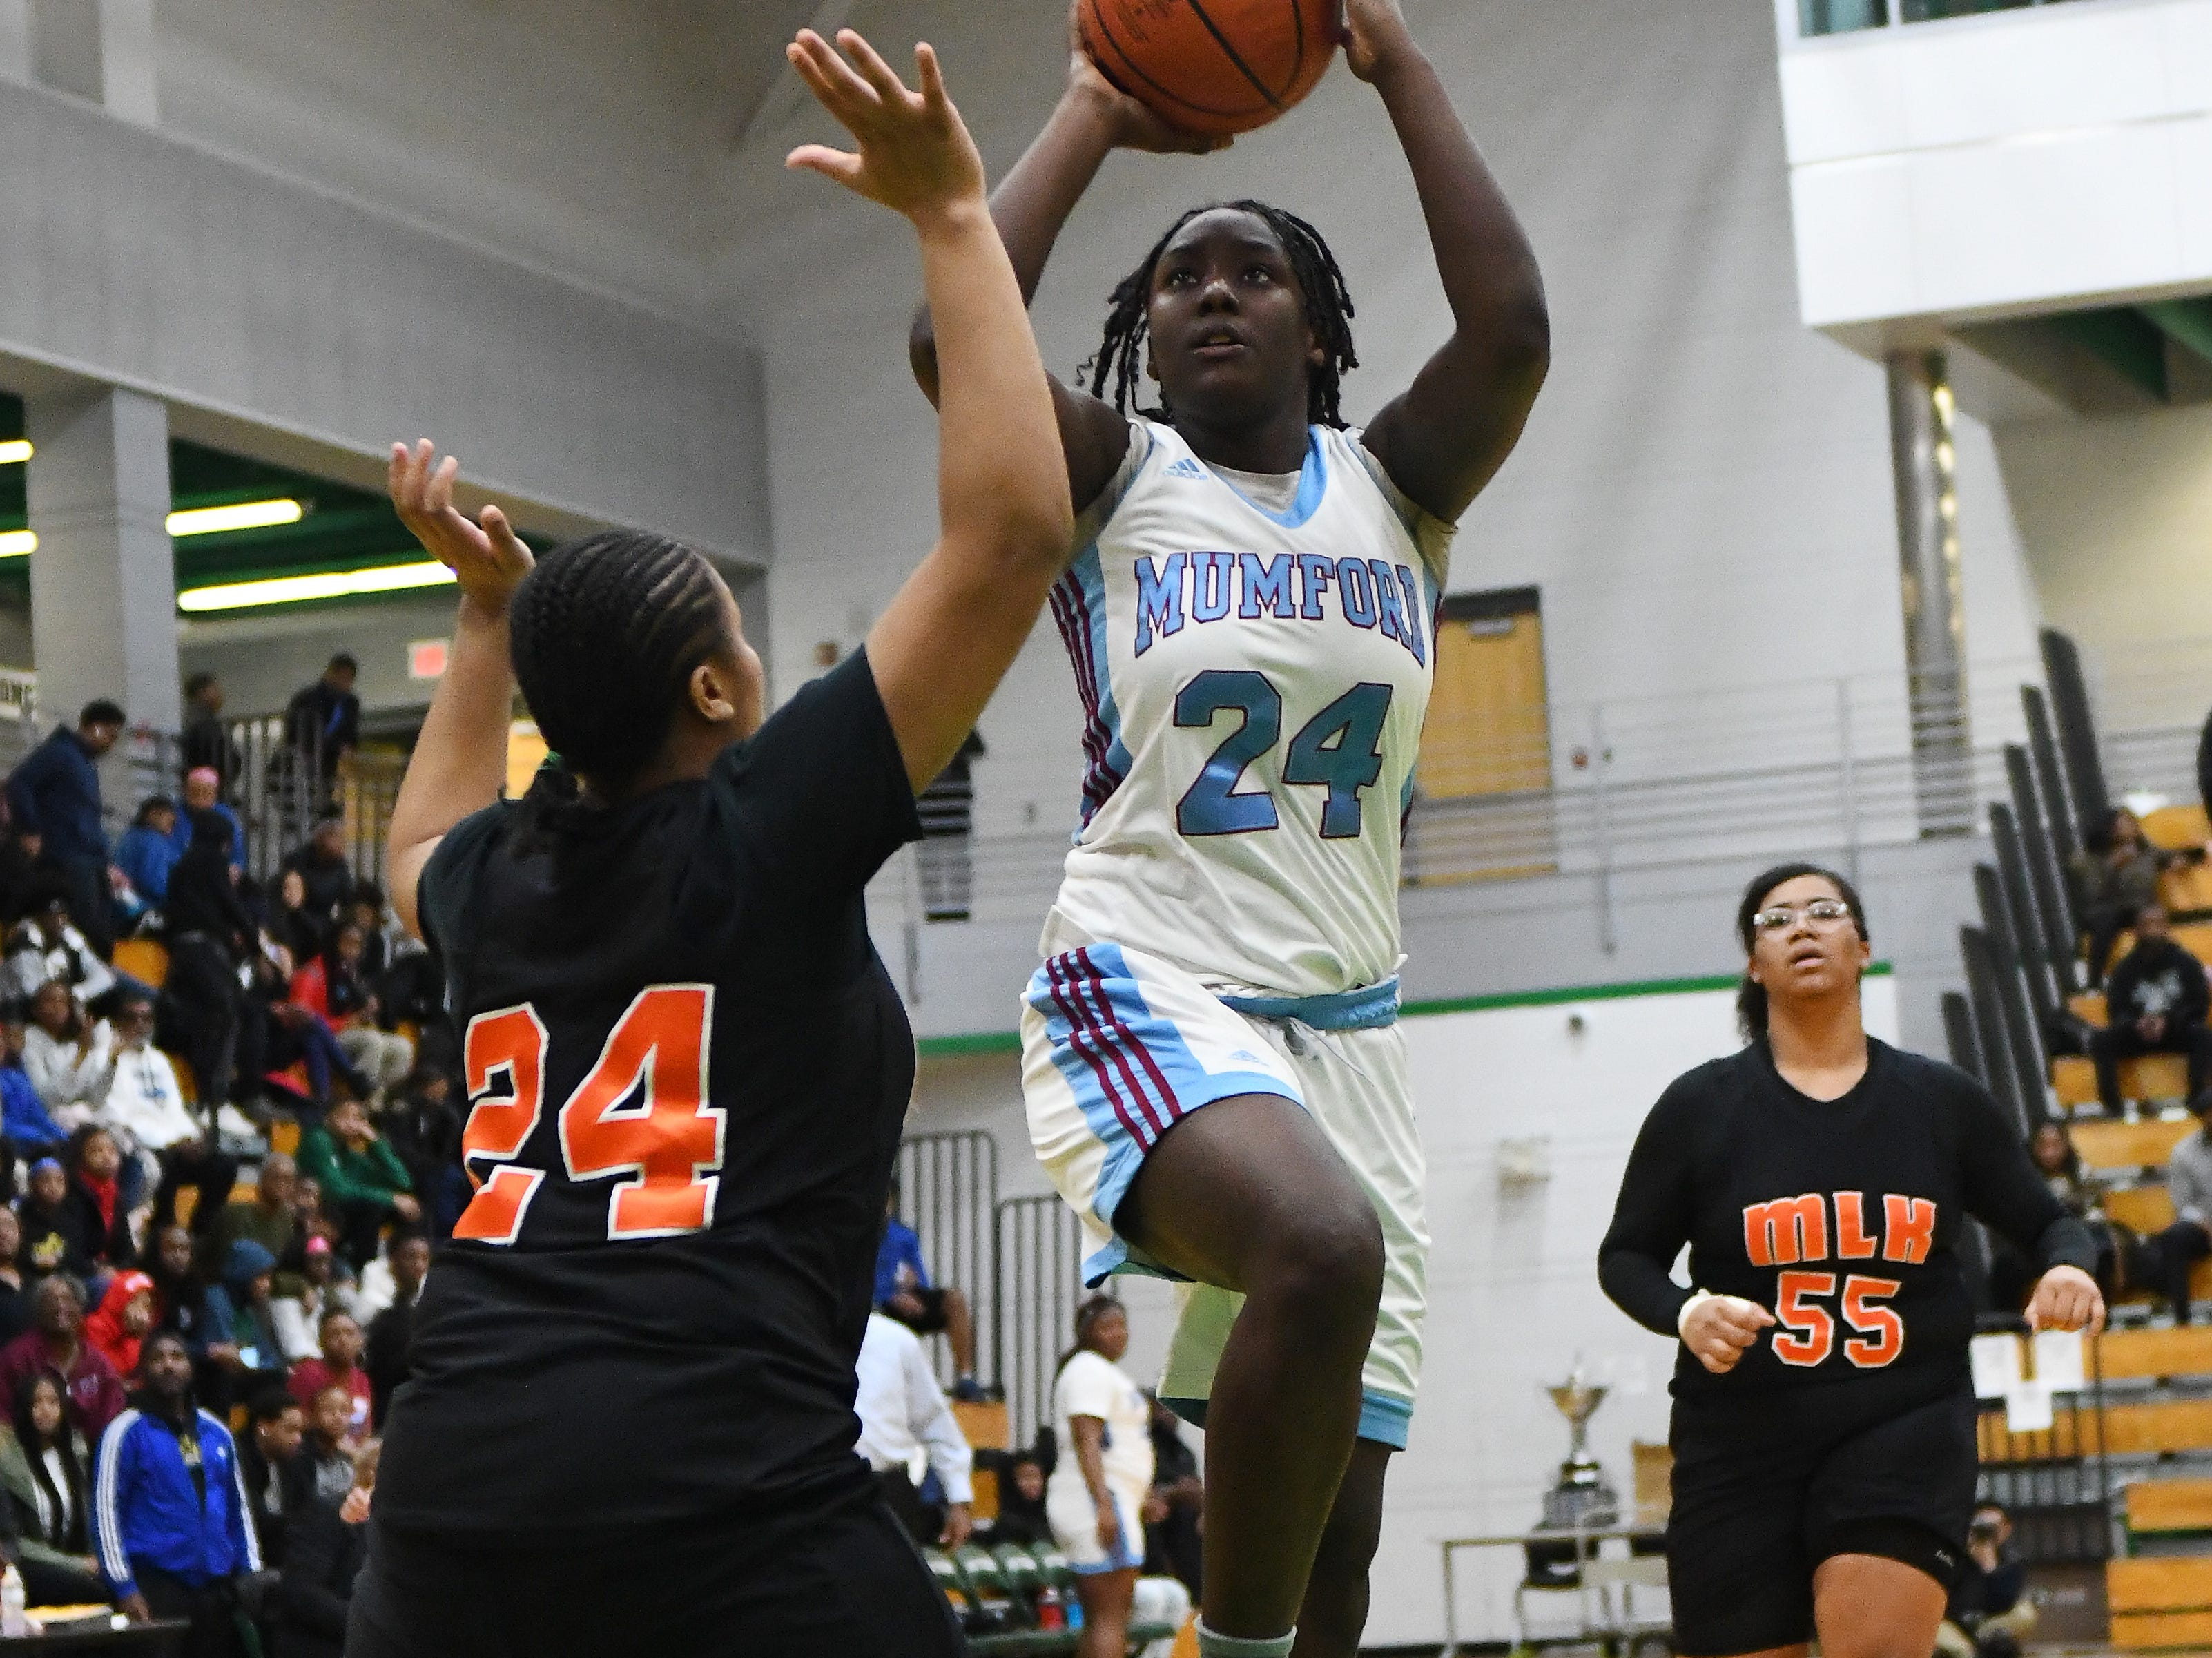 Mumford's Ajanee Horton puts up a shot against King's Danielle Camp in the first half.